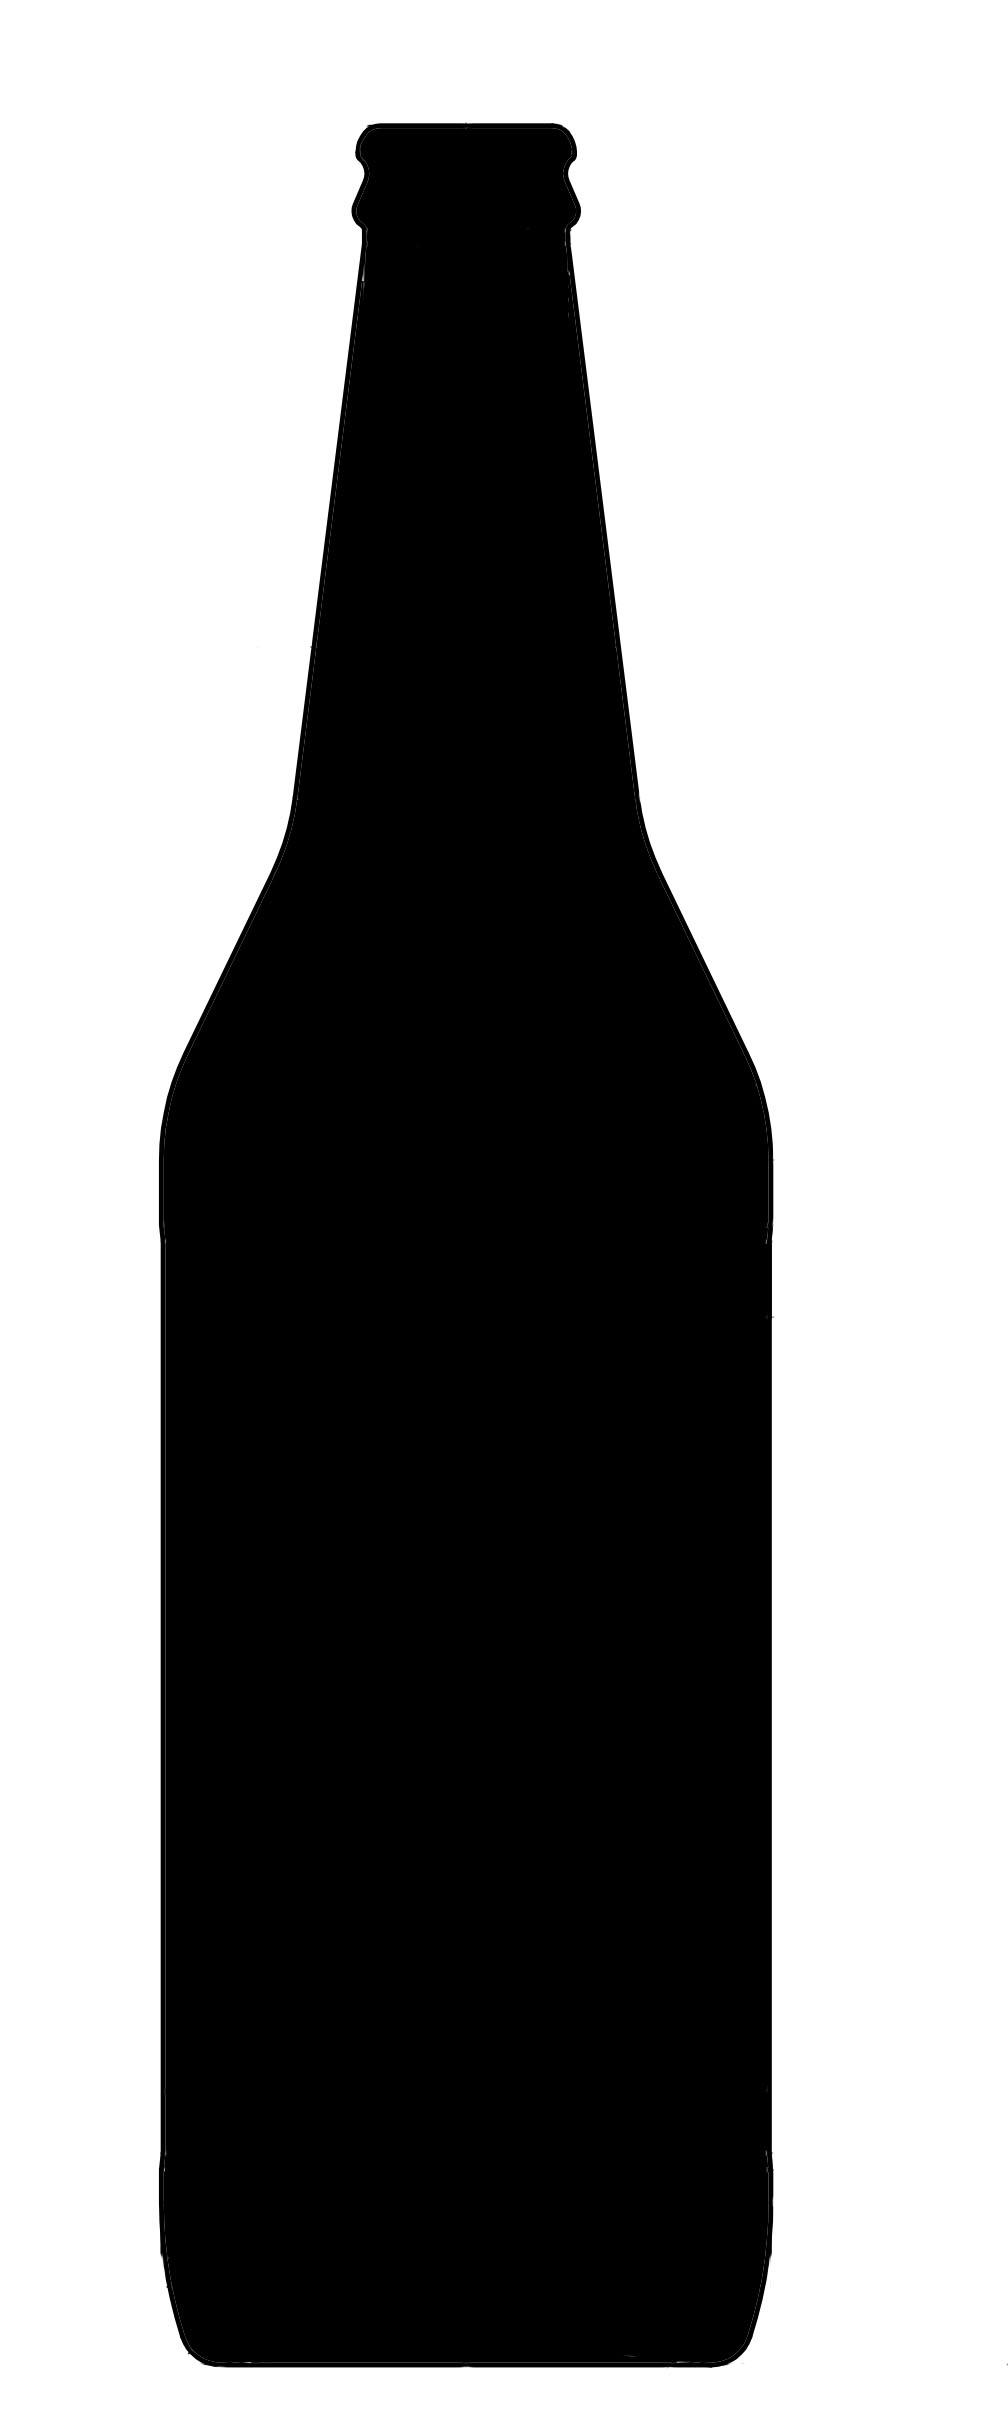 Beer Bottle Clipart Black And White - ClipArt Best